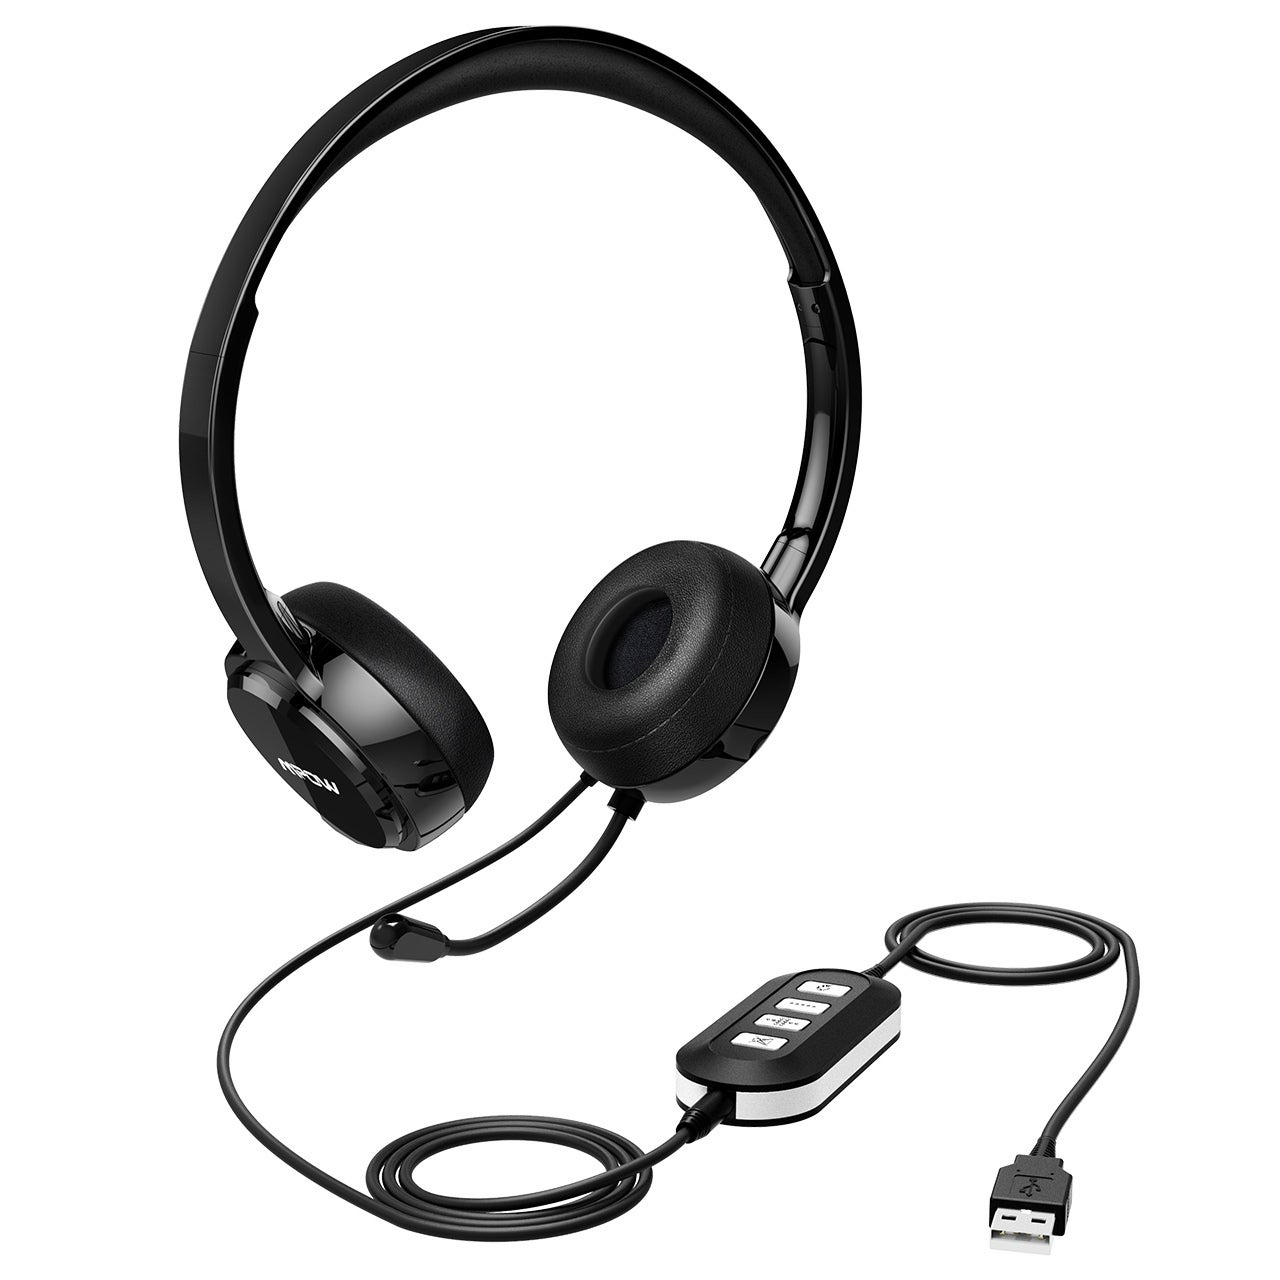 Mpow USB Headset with Noise Reduction Sound Card, In-line...